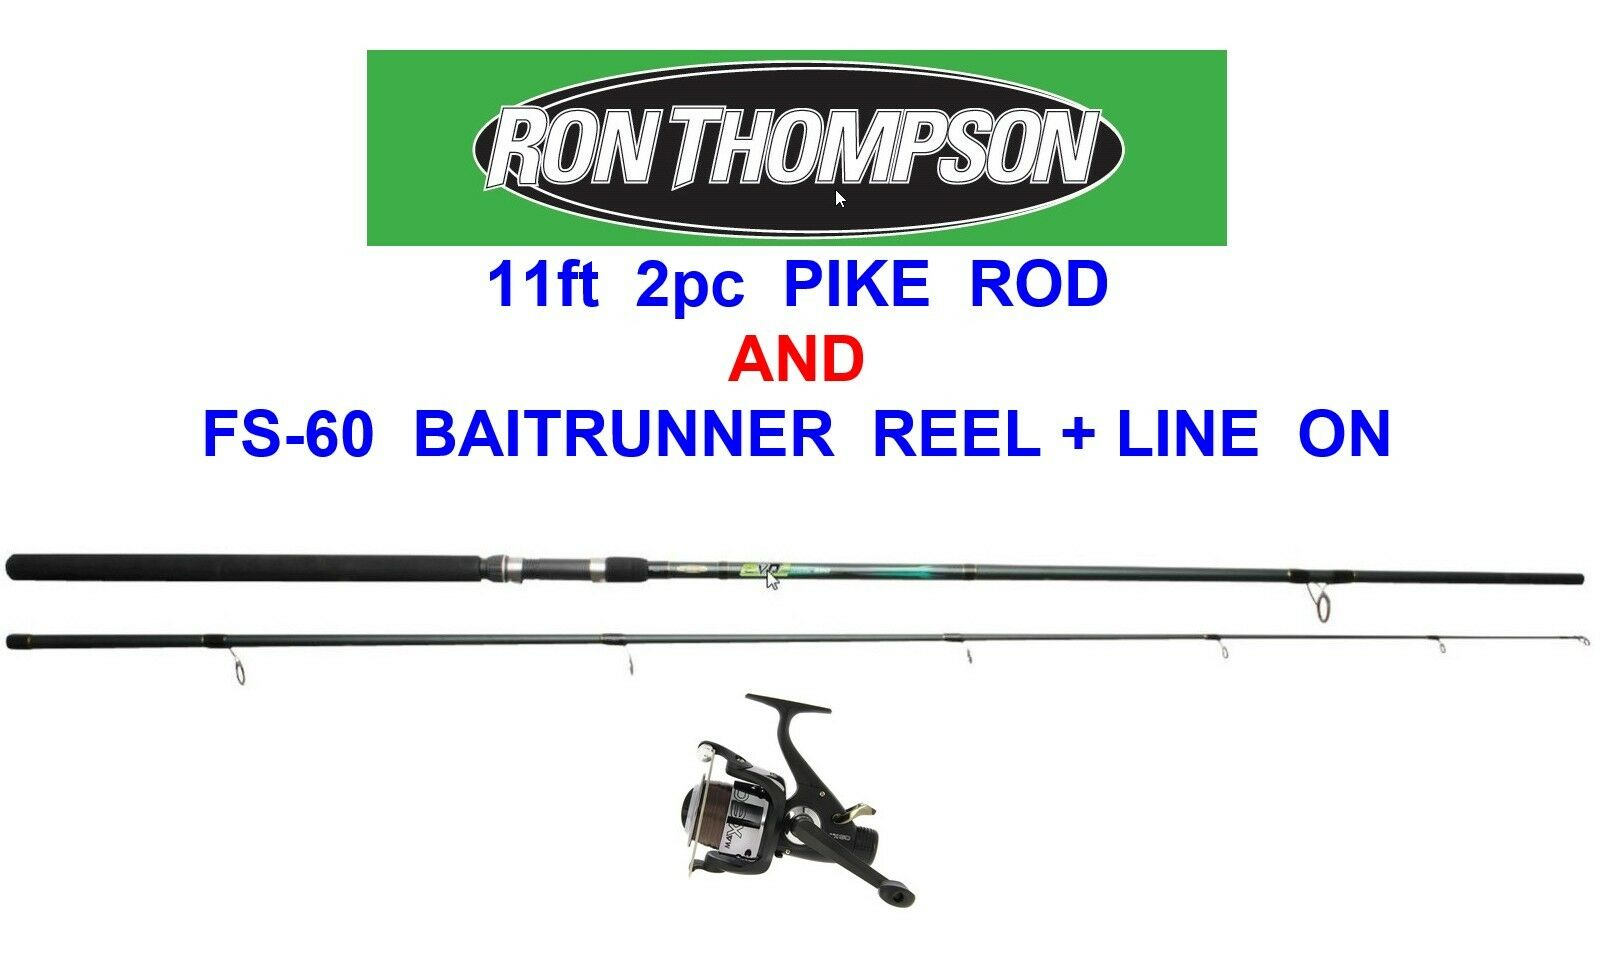 RON THOMPSON 11ft 2pc PIKE ROD & FS-60 BAITFEEDER REEL COARSE FISHING SPINNING